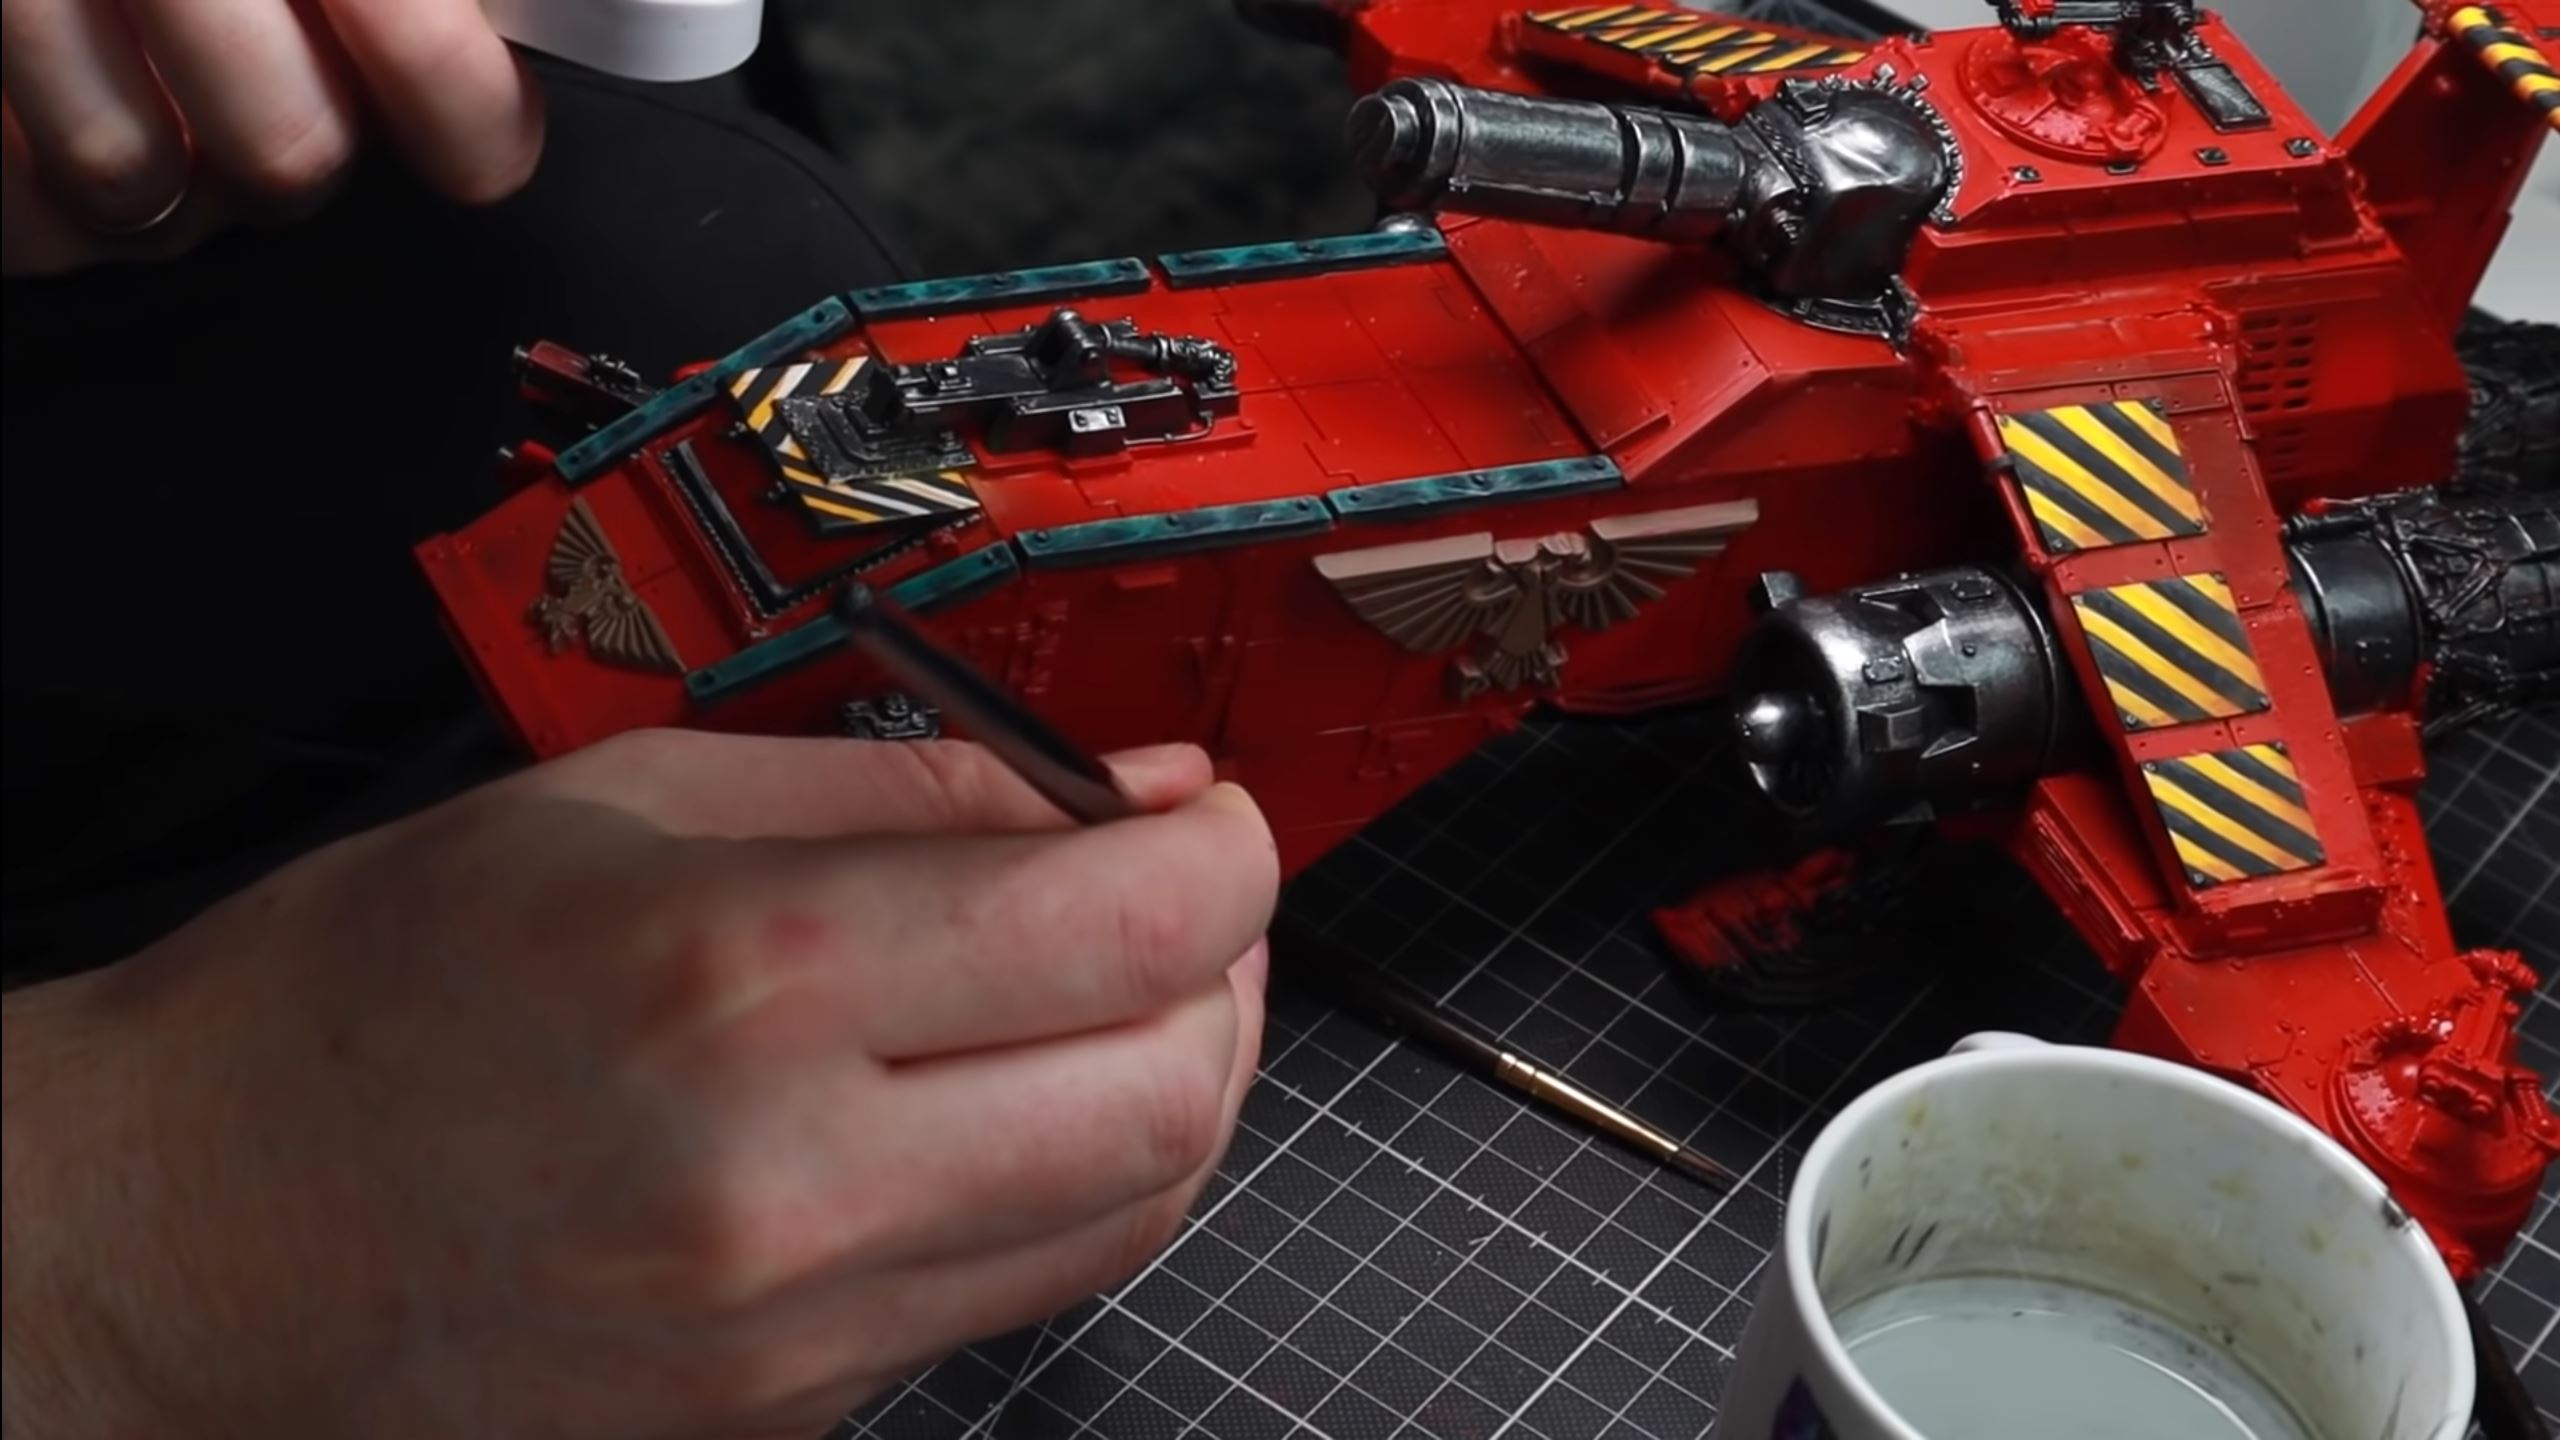 Emil paints fine highlights on the side of a Blood Angels Thunderhawk.